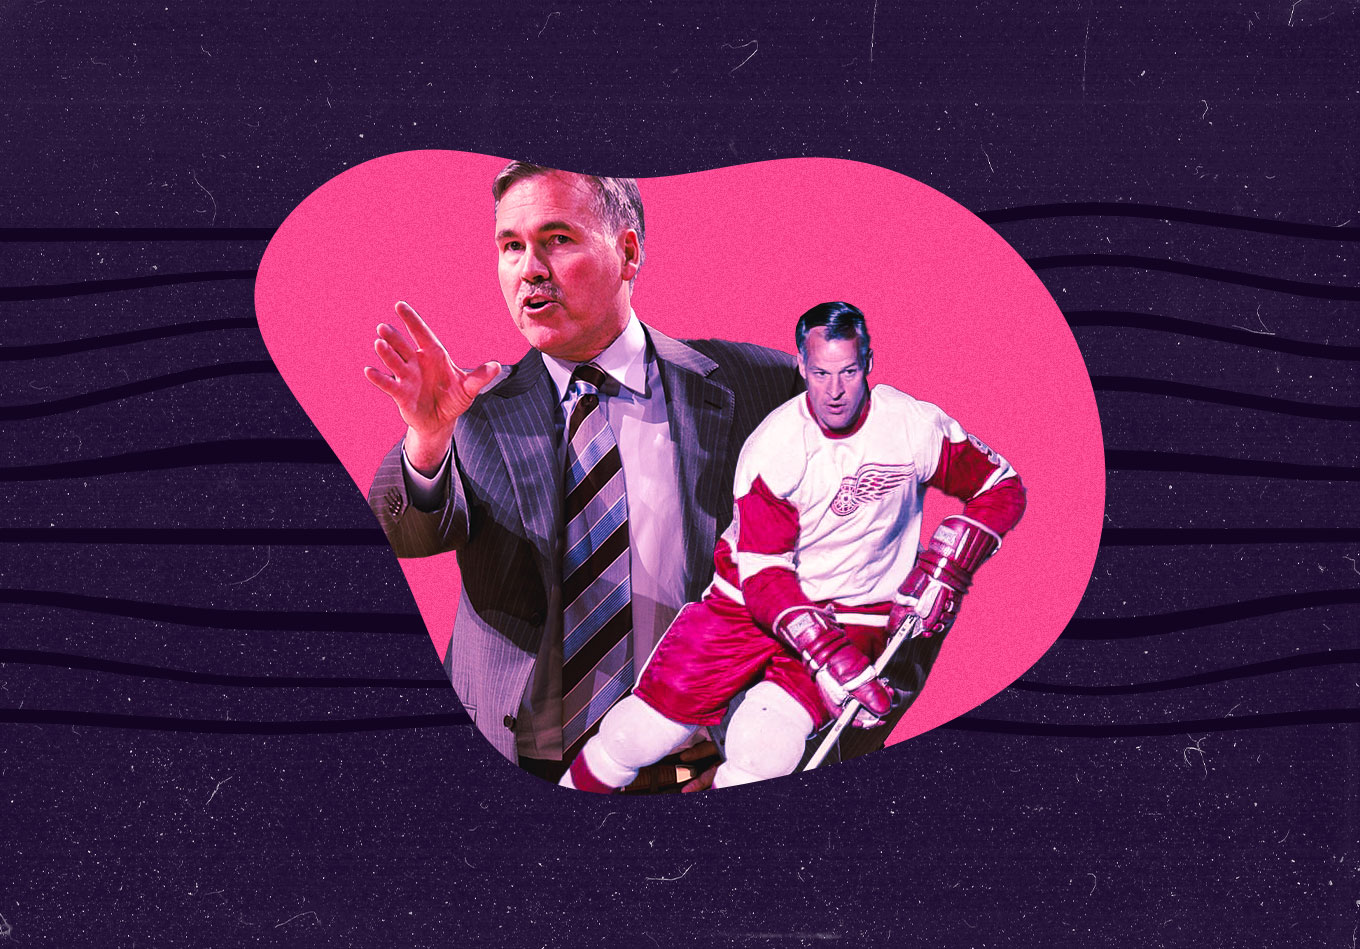 The 7 Seconds or Less Suns, Gordie Howe Hat Tricks, and Other Sports Myths That Simply Aren't True